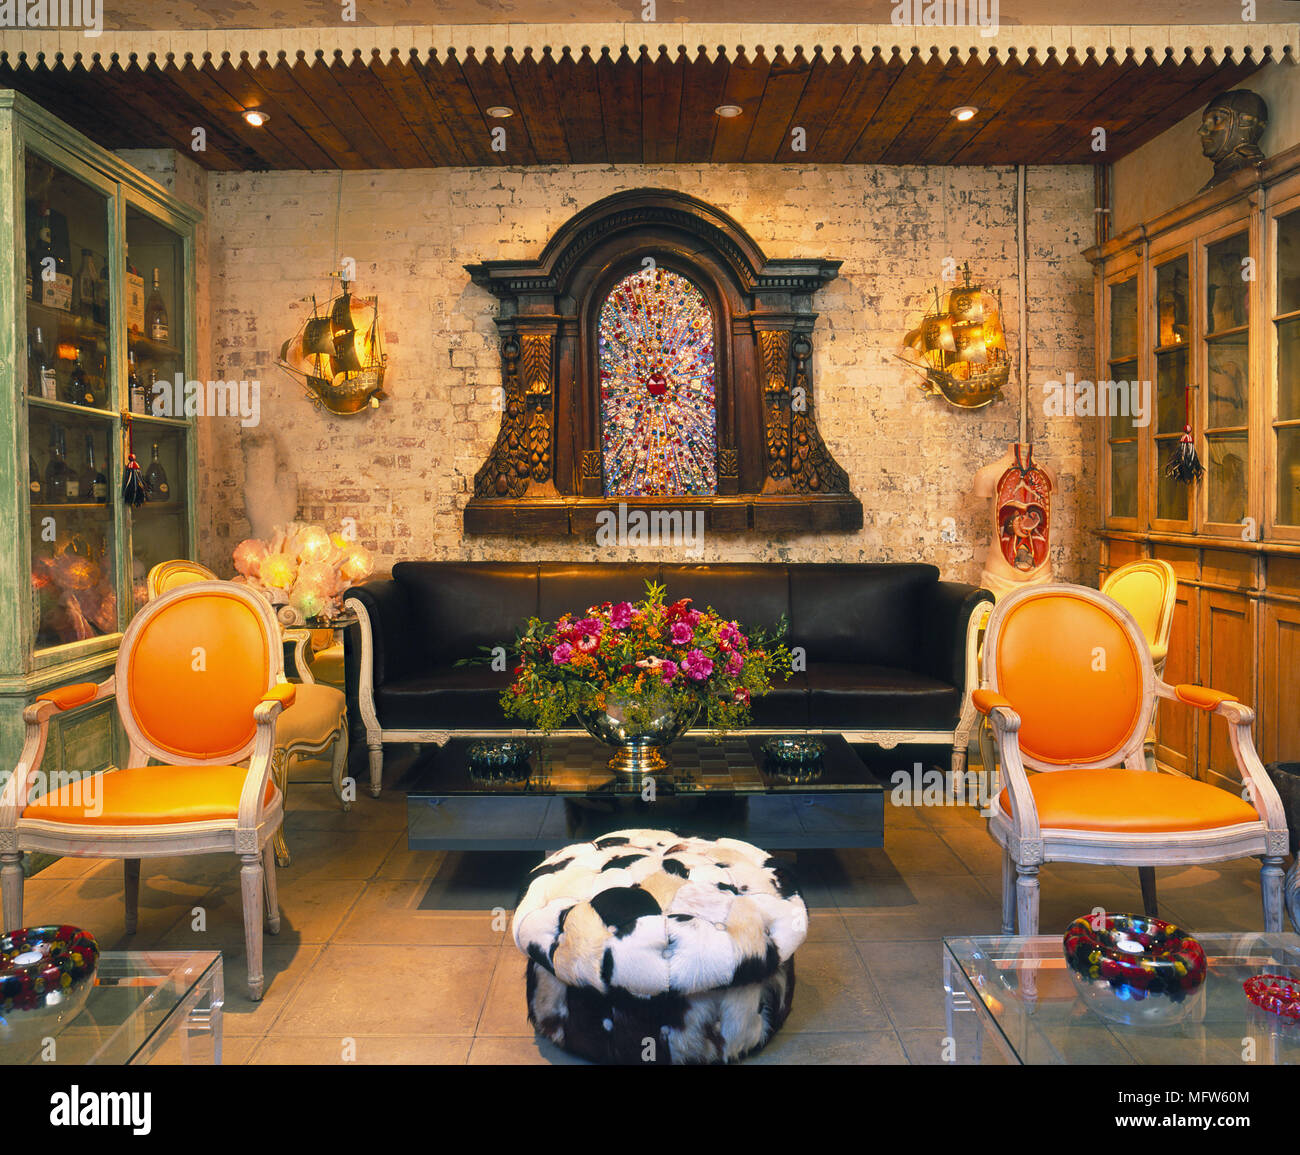 Details Of A Bohemian Styled Sitting Room With Two Period Orange Chairs In  Front Of A Black Leather Couch With A Coffee Table With Flowers.